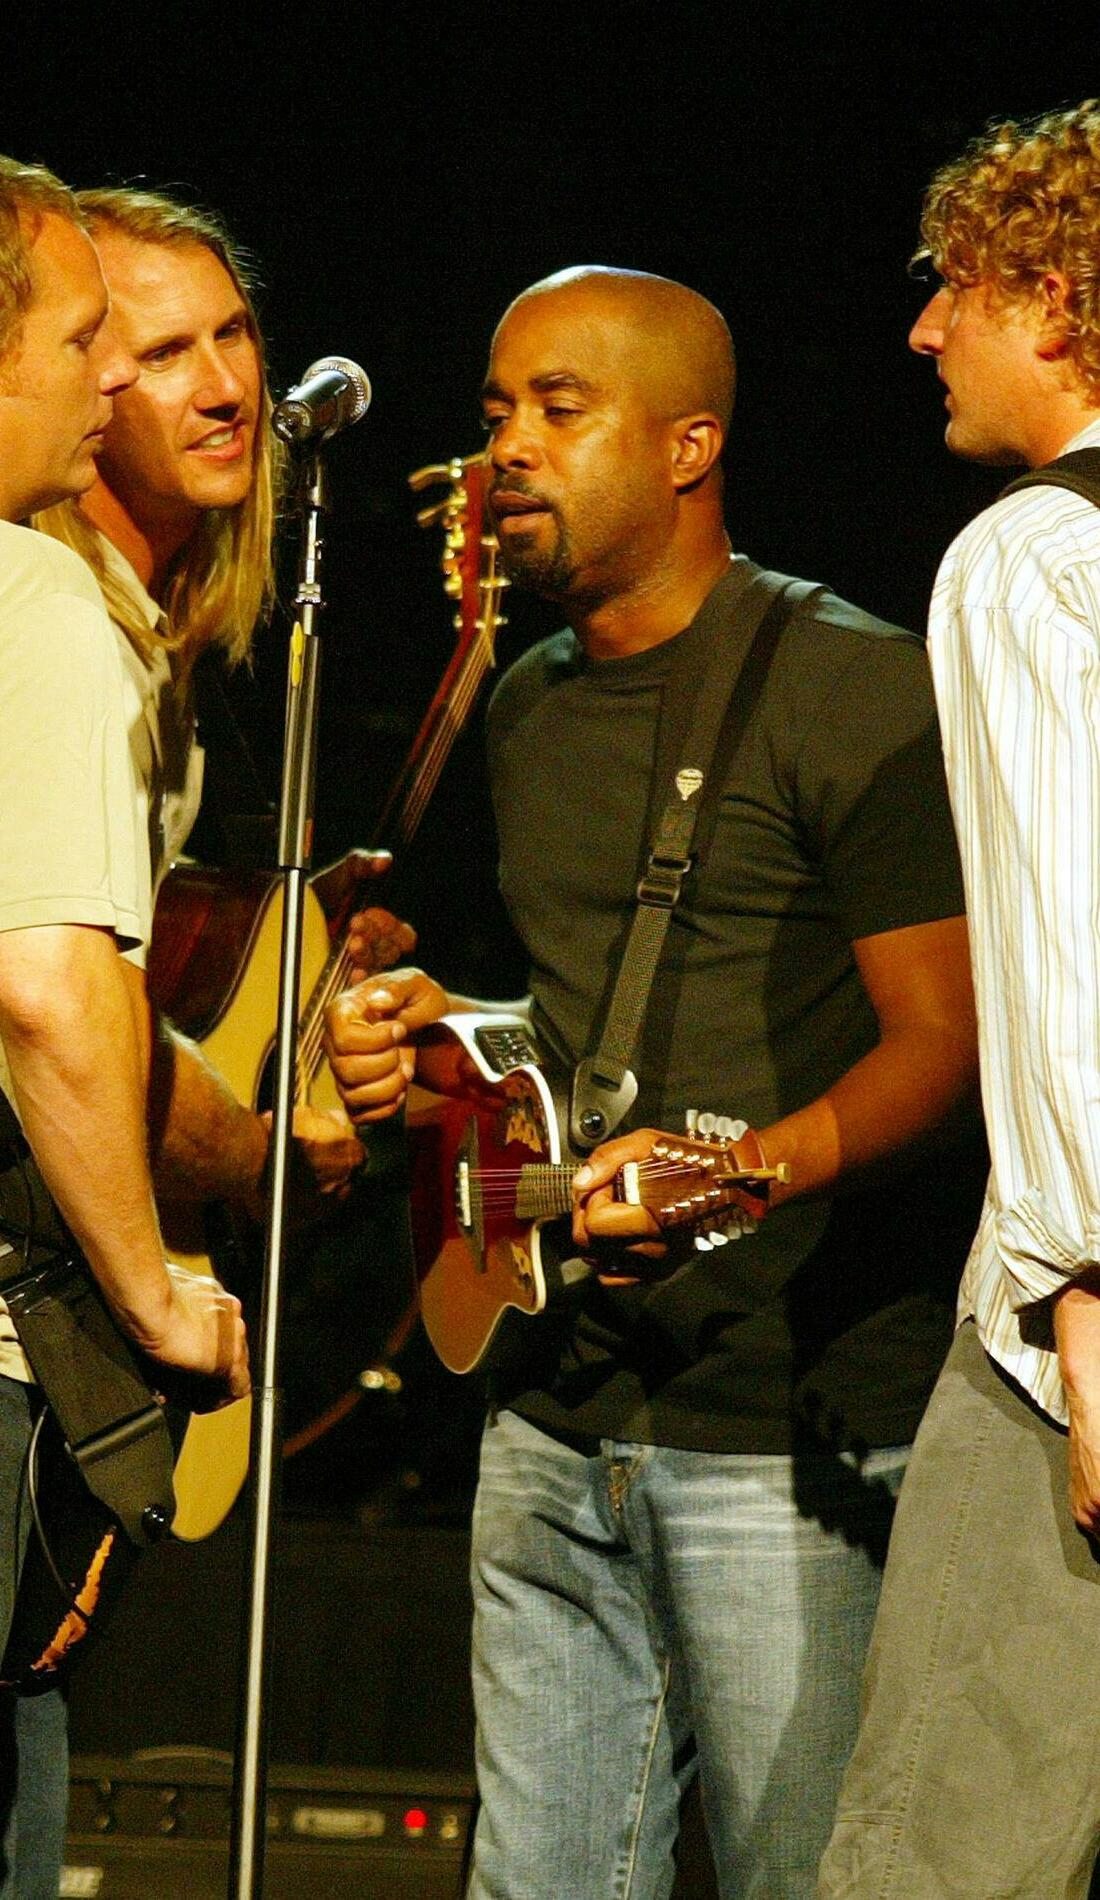 A Hootie & The Blowfish live event